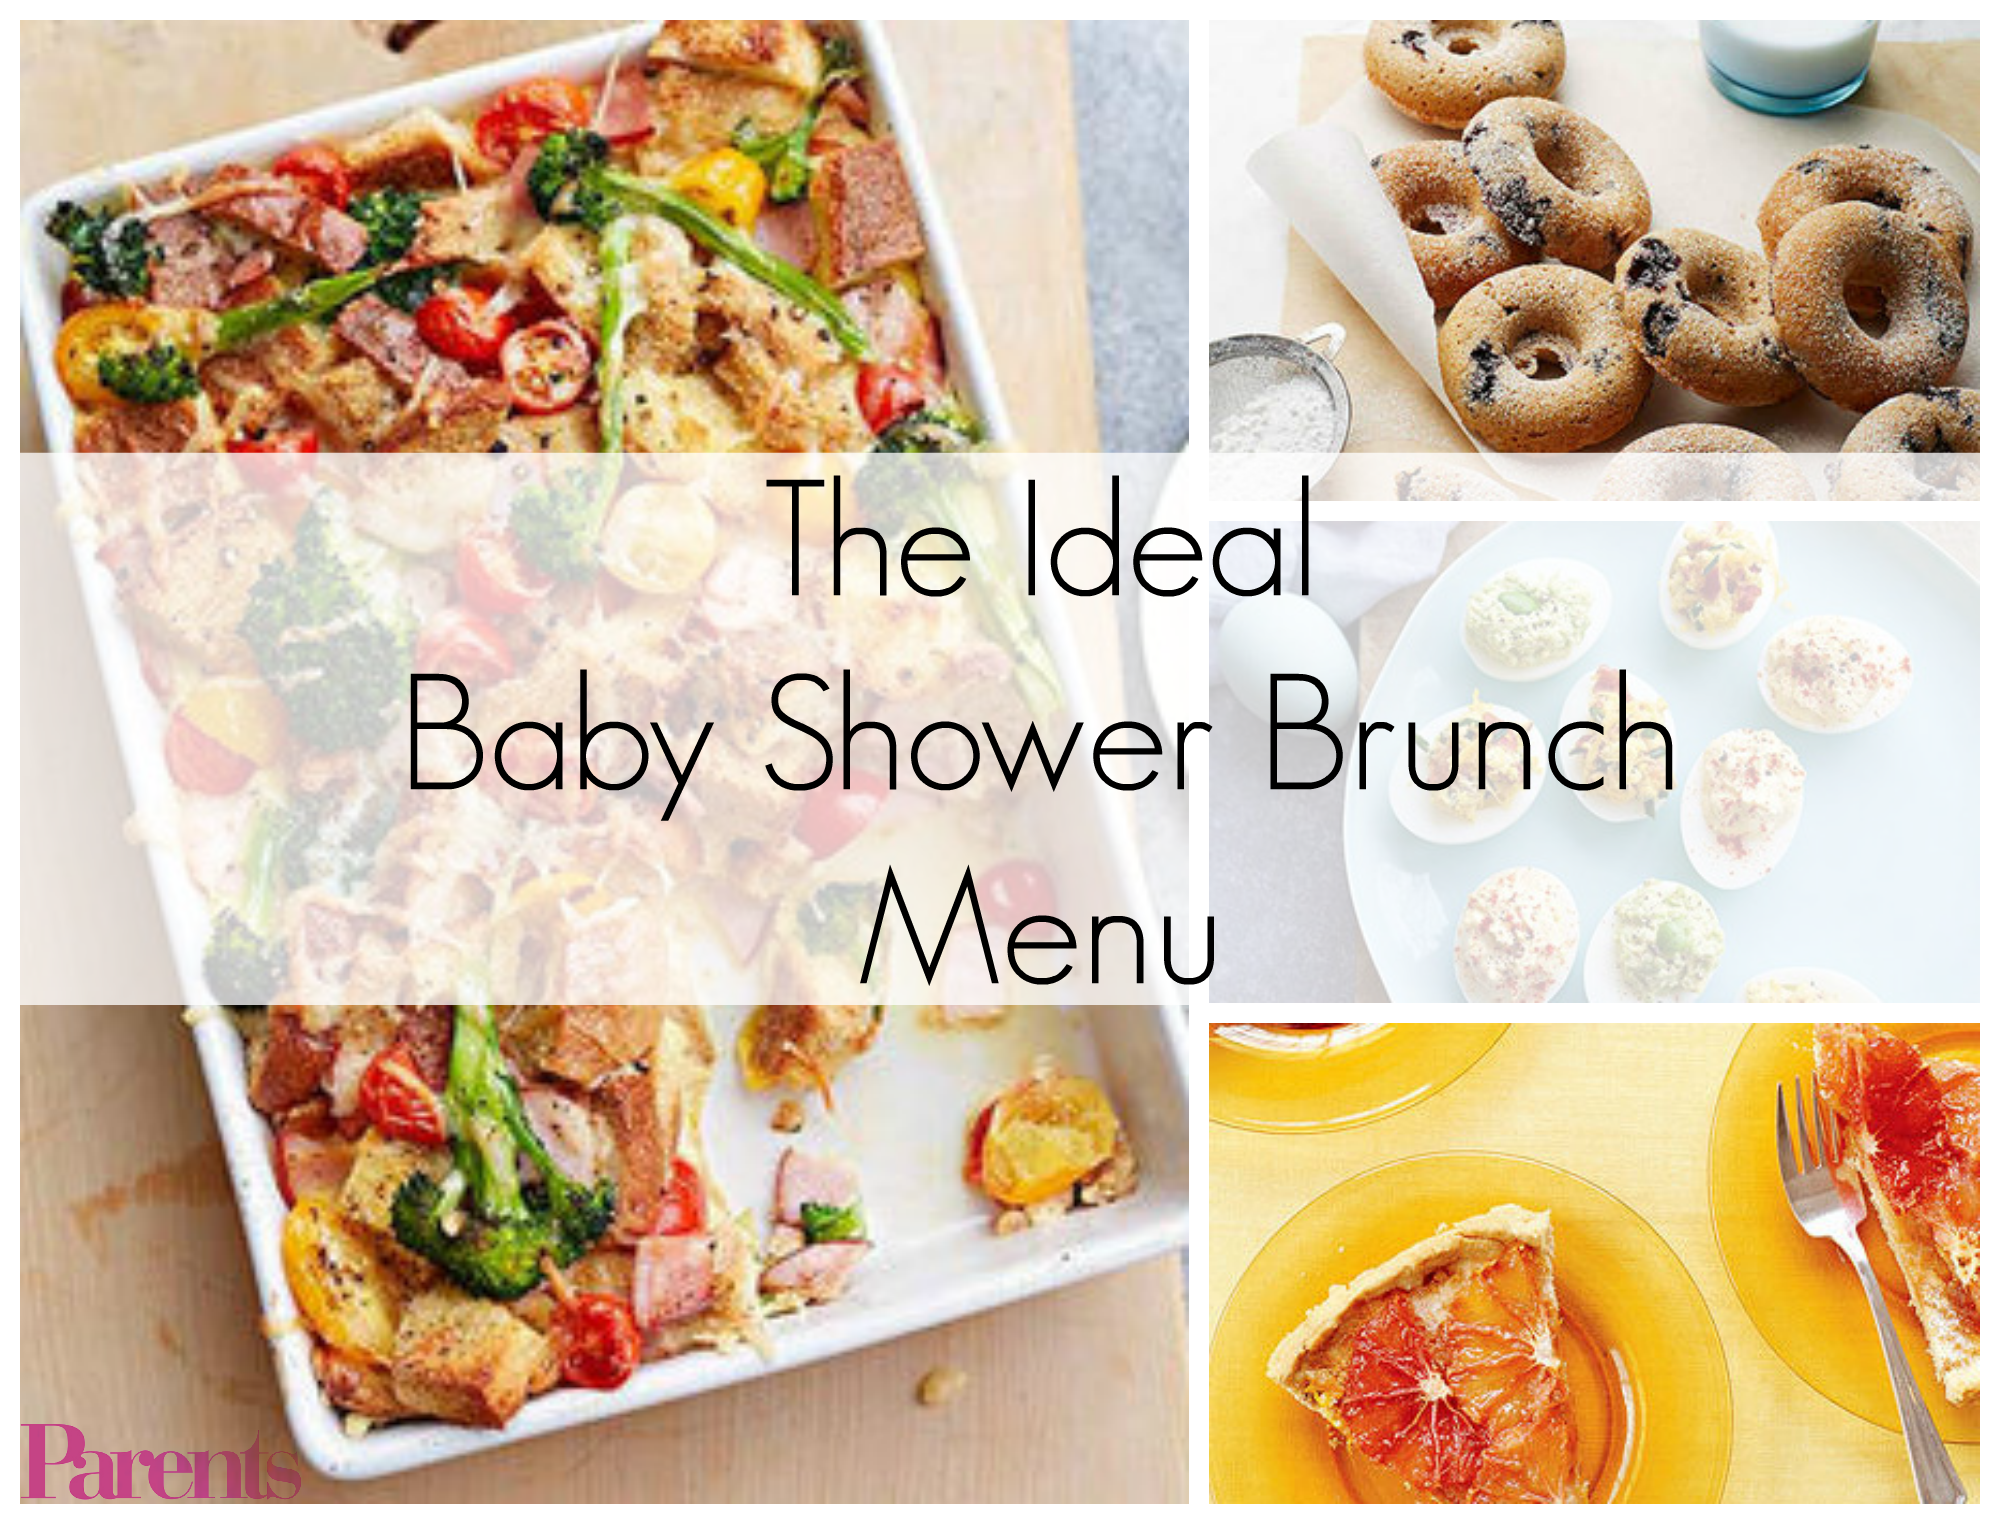 Planning A Baby Shower Brunch Menu? These Simple, Yet Special Dishes Will  Make Any